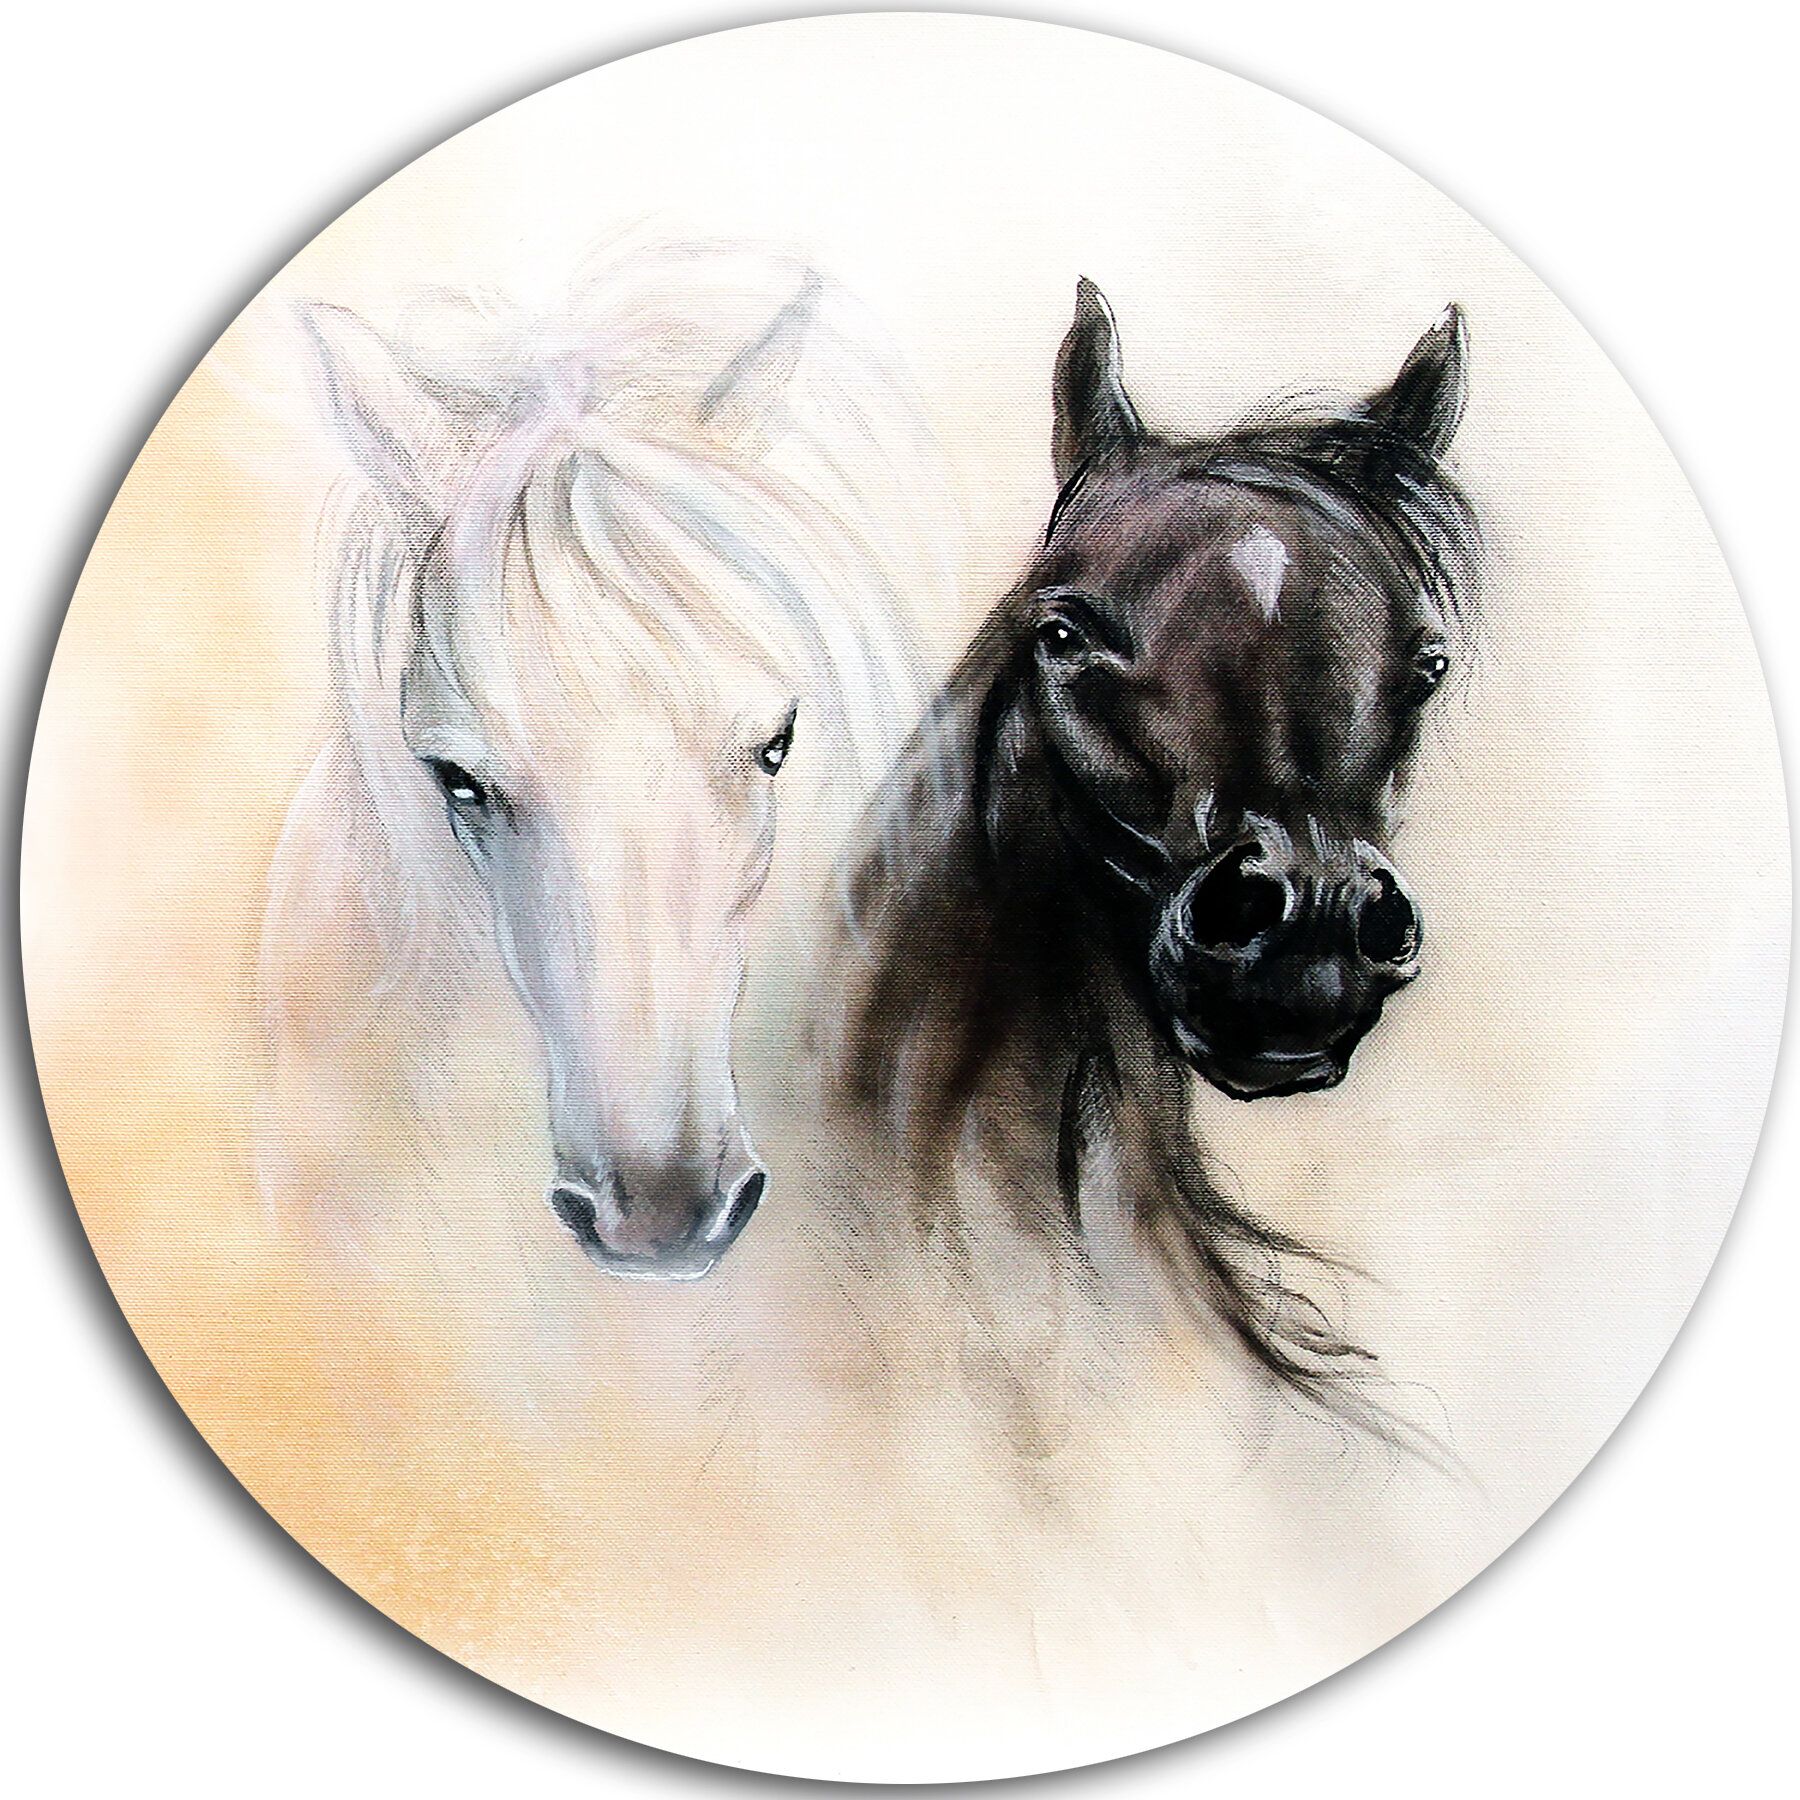 Designart Black And White Horse Heads Painting Print On Metal